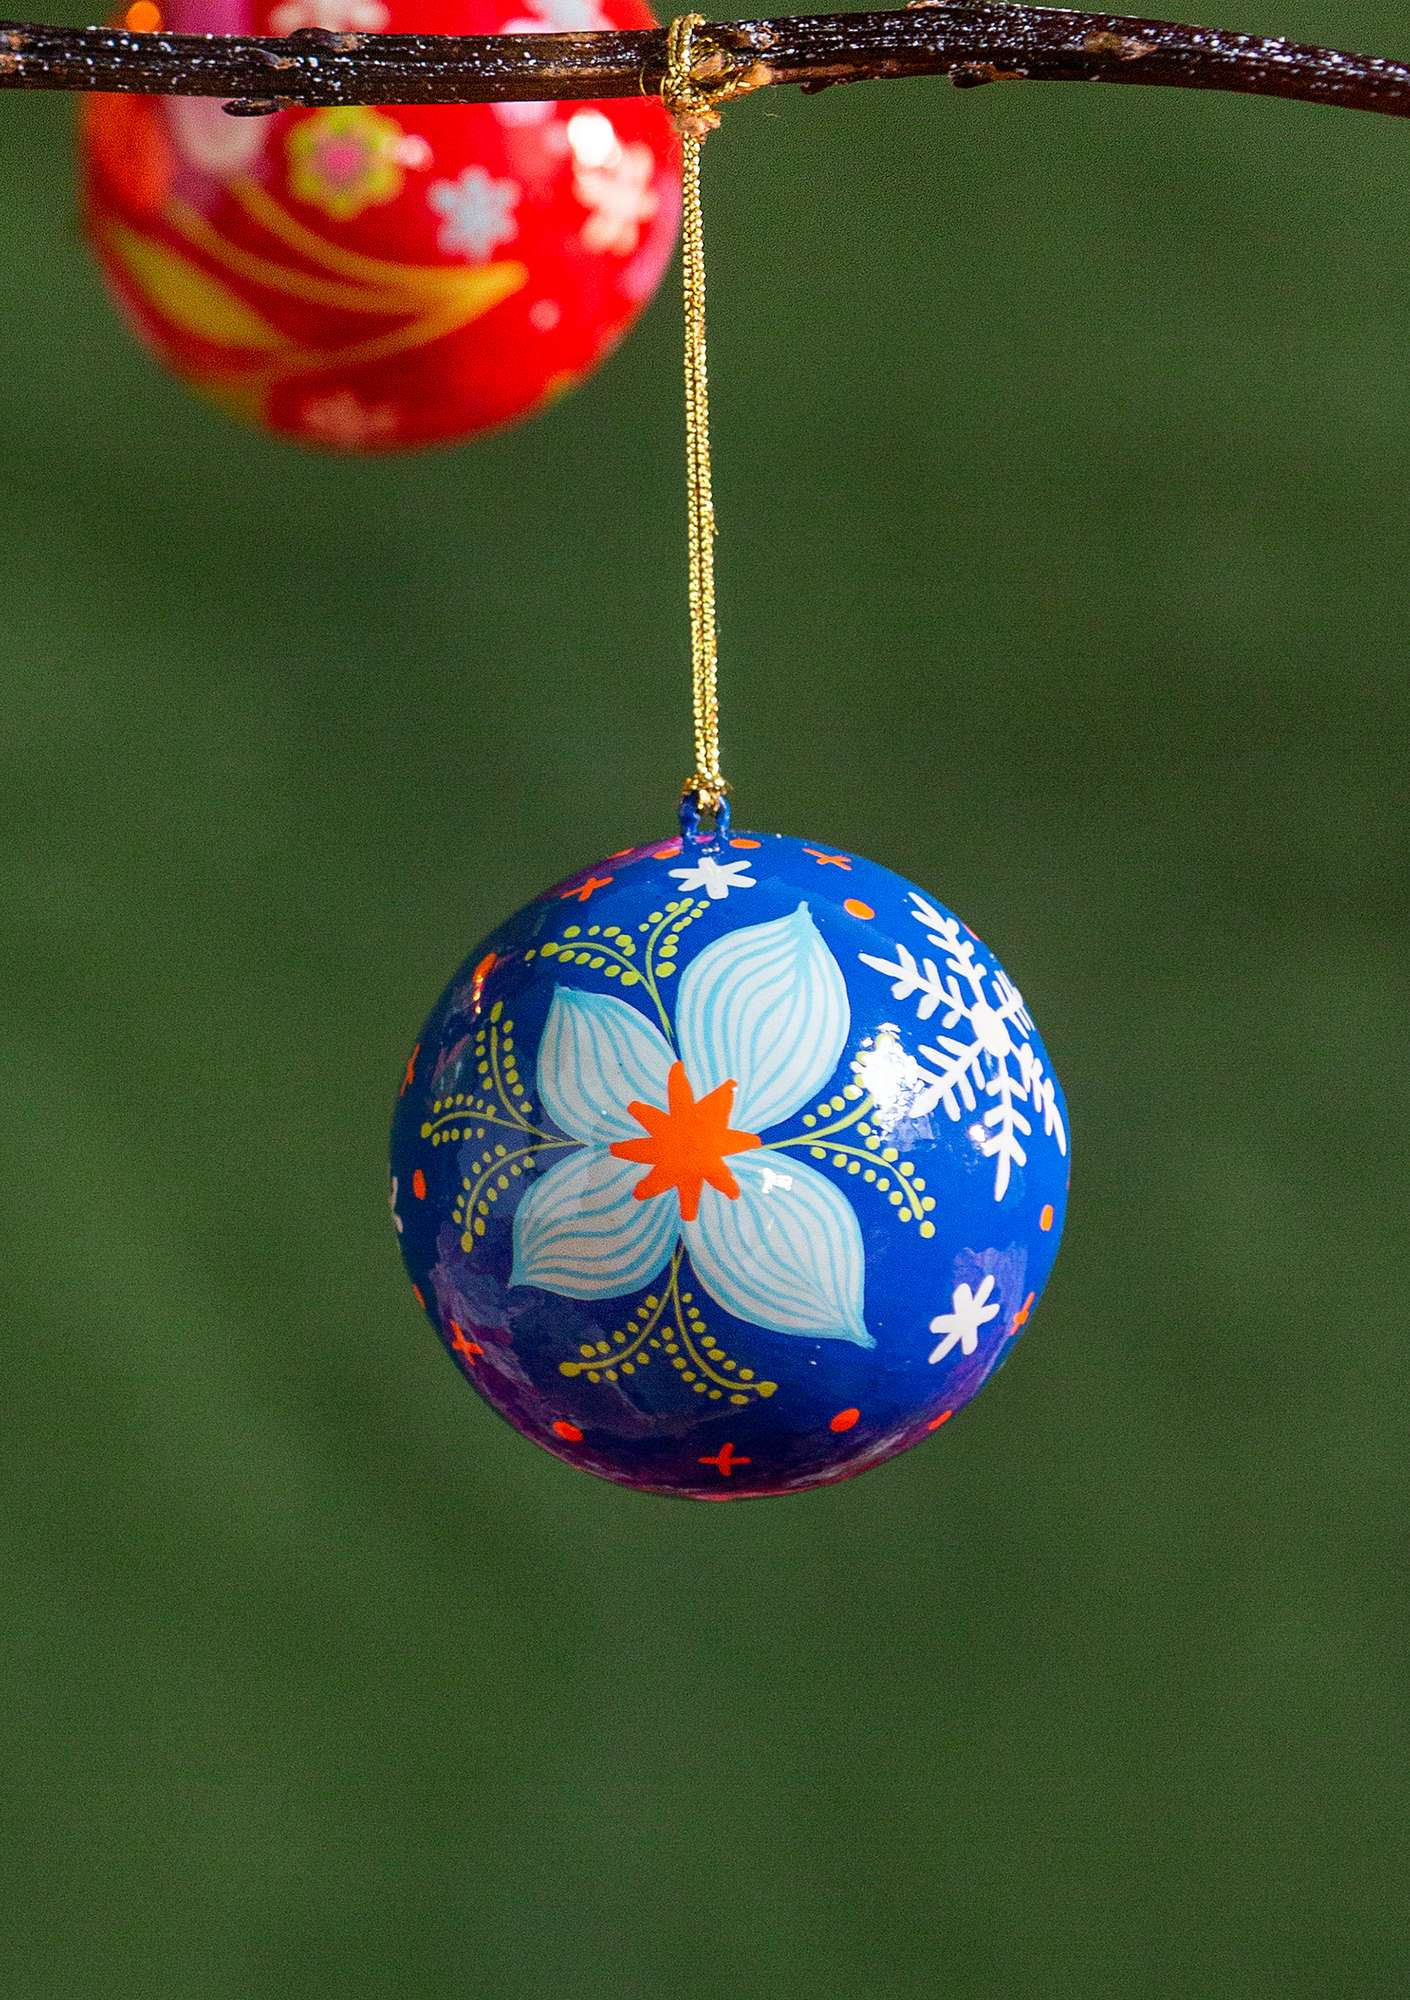 Papier maché holiday ornament porcelain blue